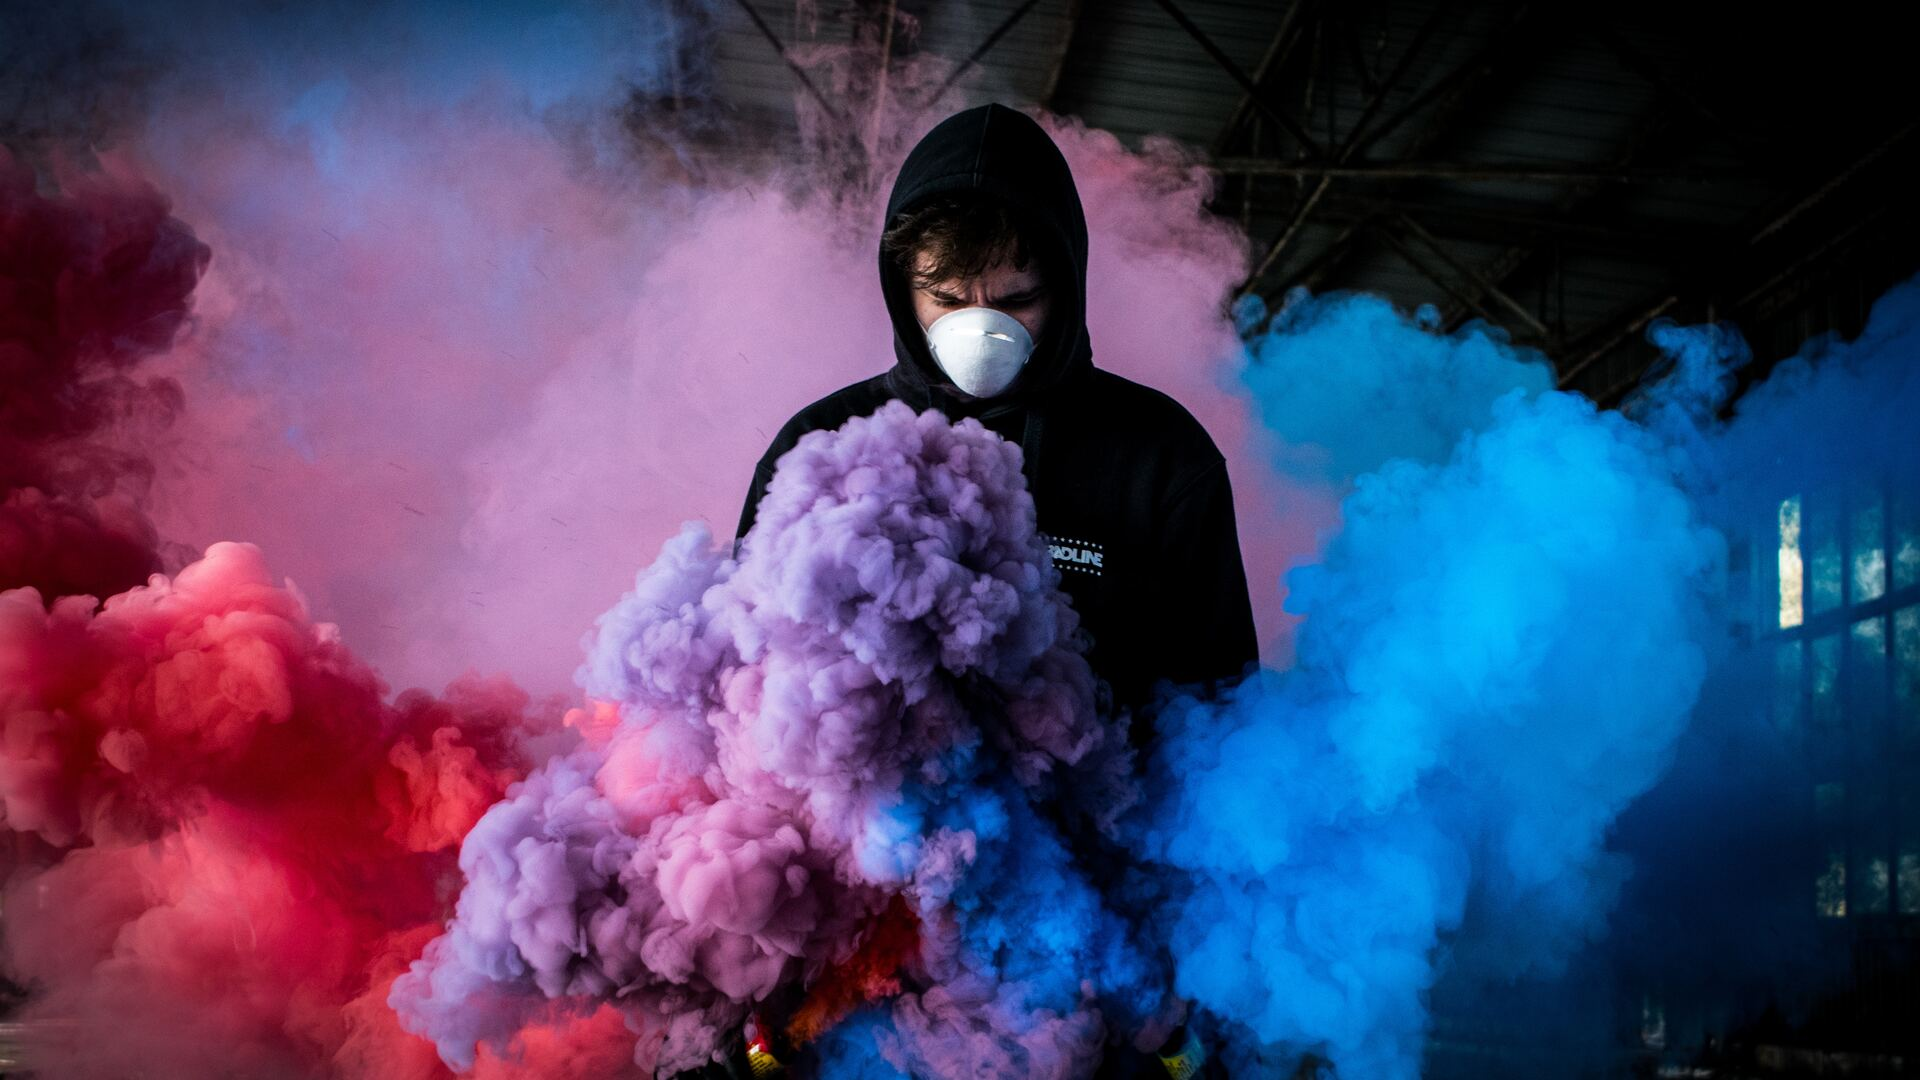 1920x1080 Boy With Smoke Bomb Colorful 5k Laptop Full Hd 1080p Hd 4k Wallpapers Images Backgrounds Photos And Pictures